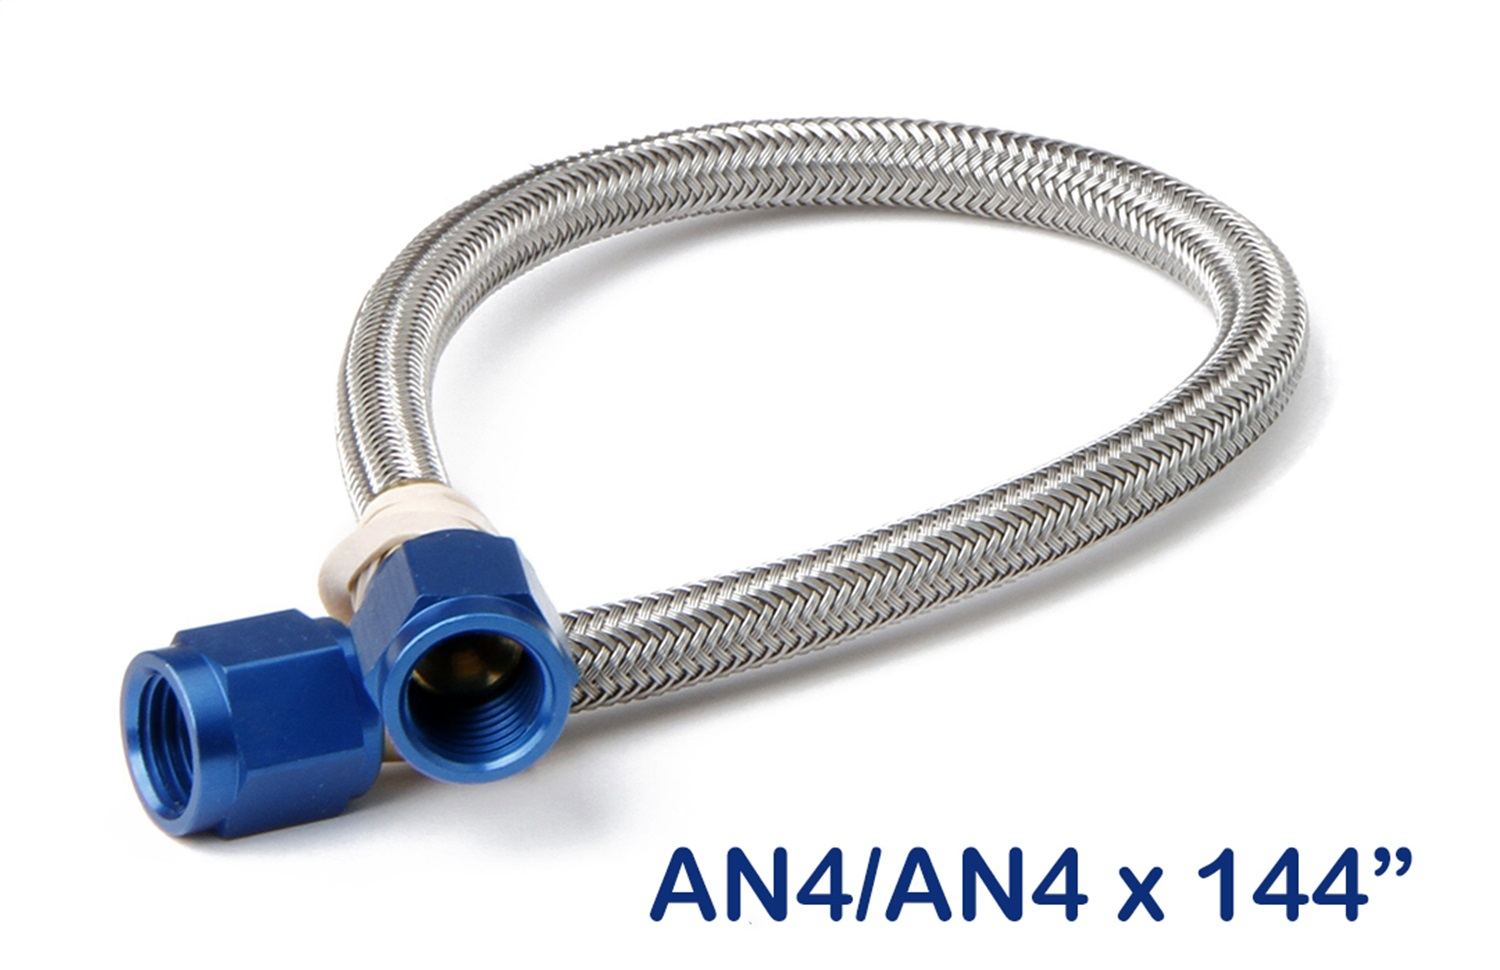 NOS 15290NOS Stainless Steel Braided Hose